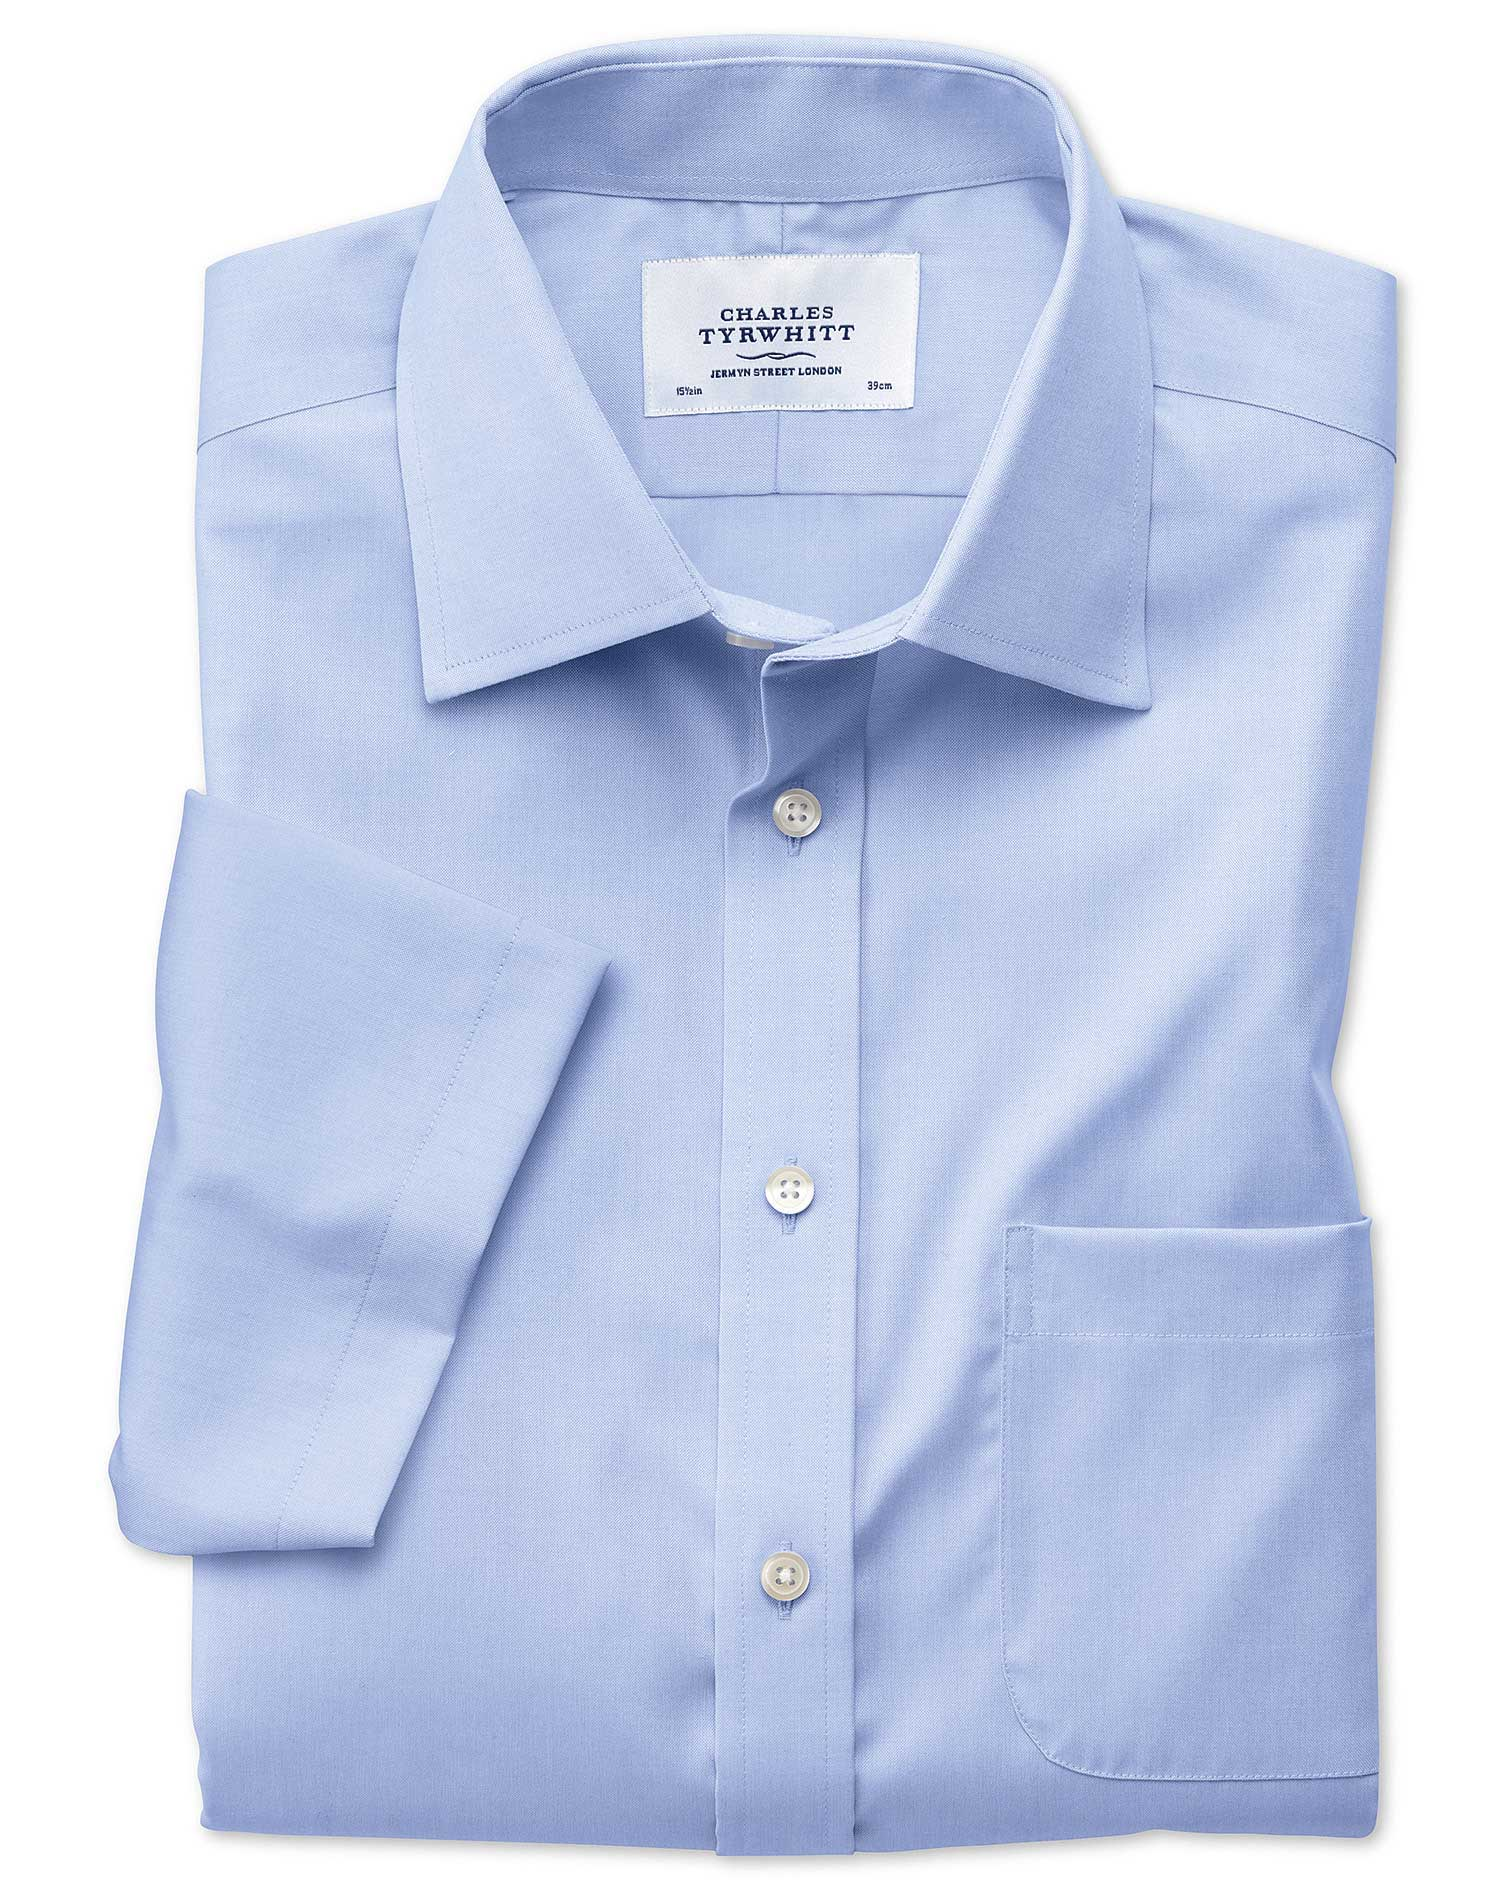 Slim Fit Non-Iron Pinpoint Short Sleeve Sky Blue Cotton Formal Shirt Size 18/Short by Charles Tyrwhi